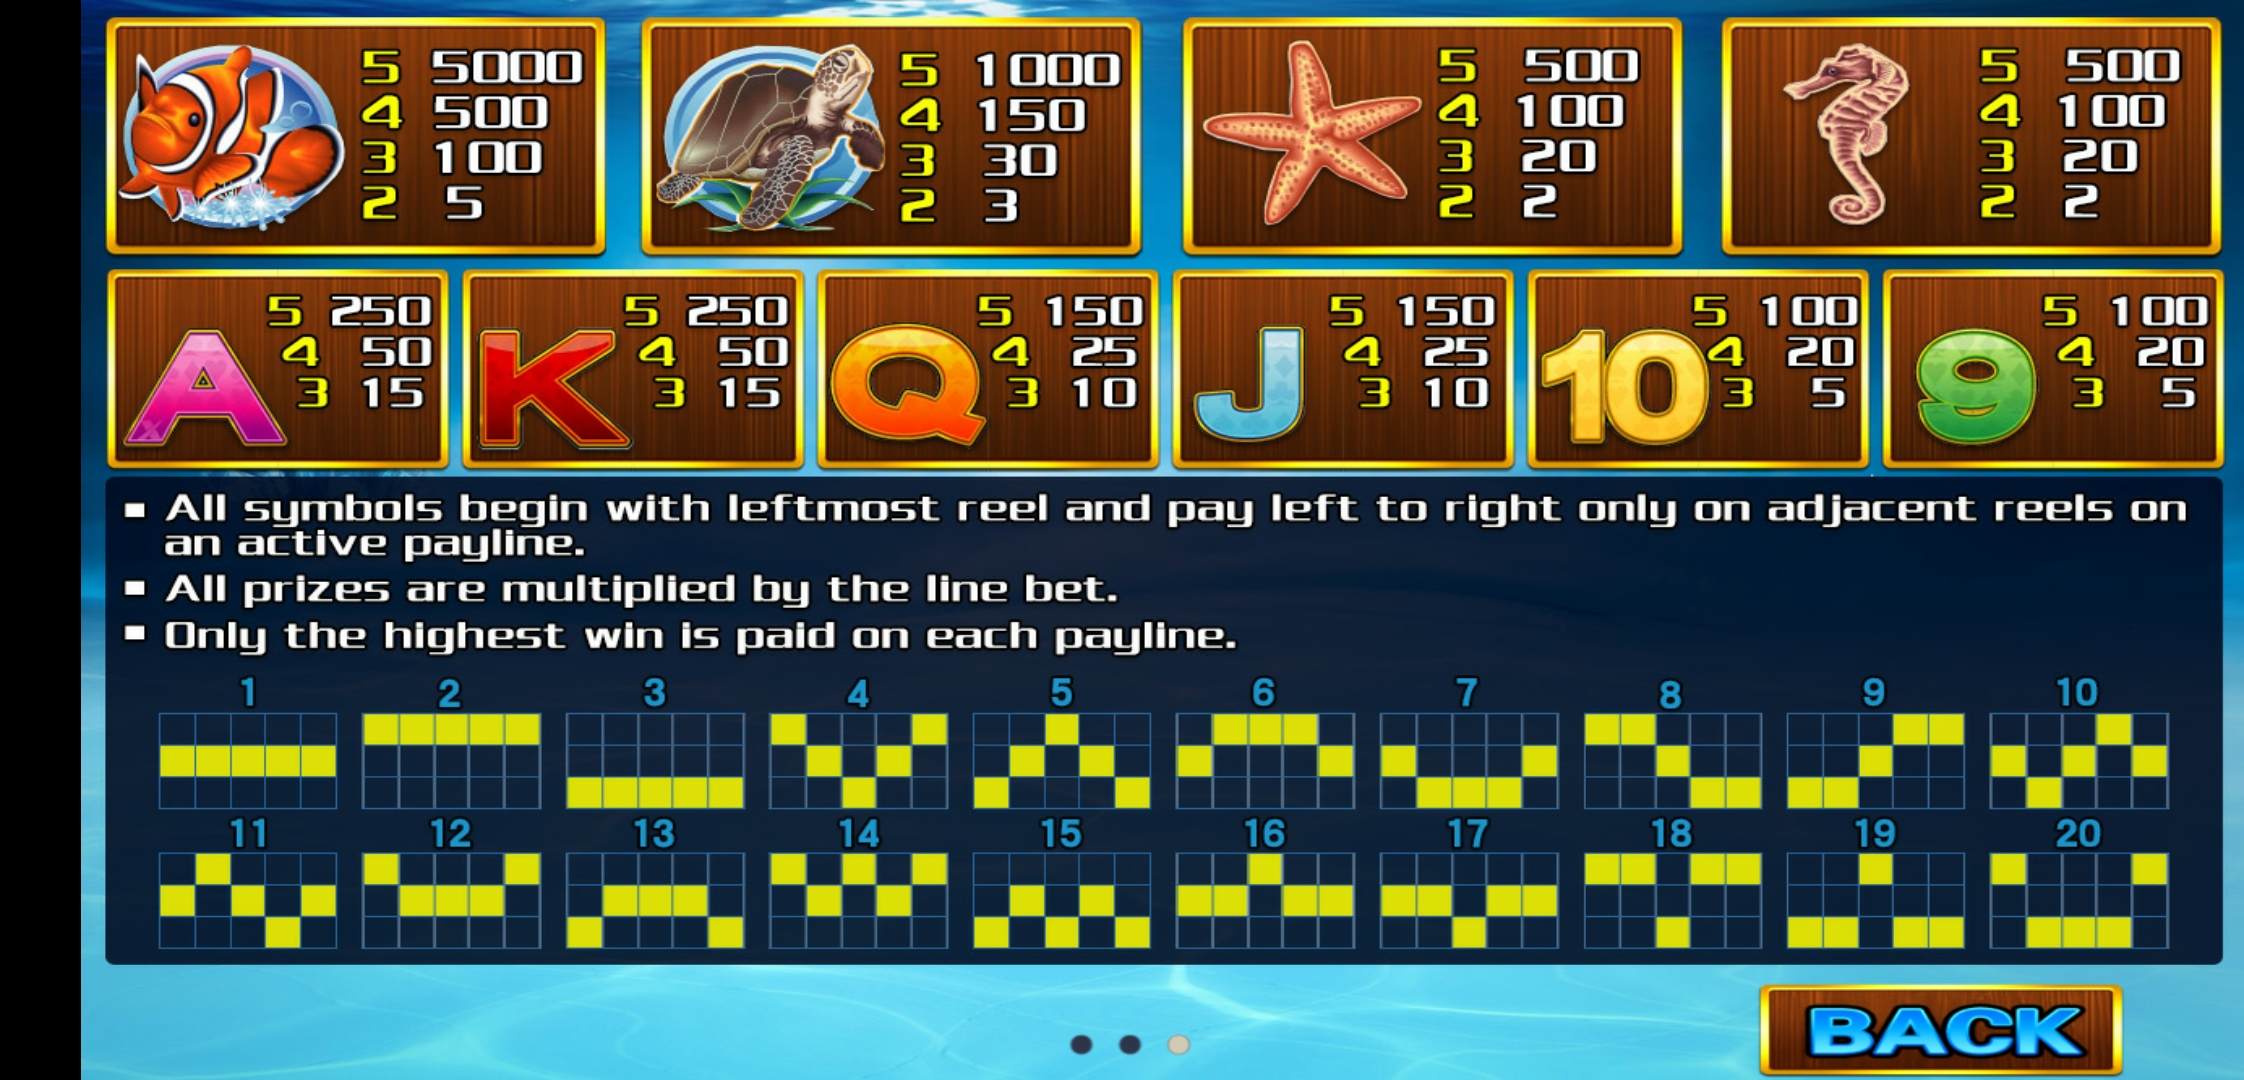 Dolphin Reef Slot Paytable & Paylines